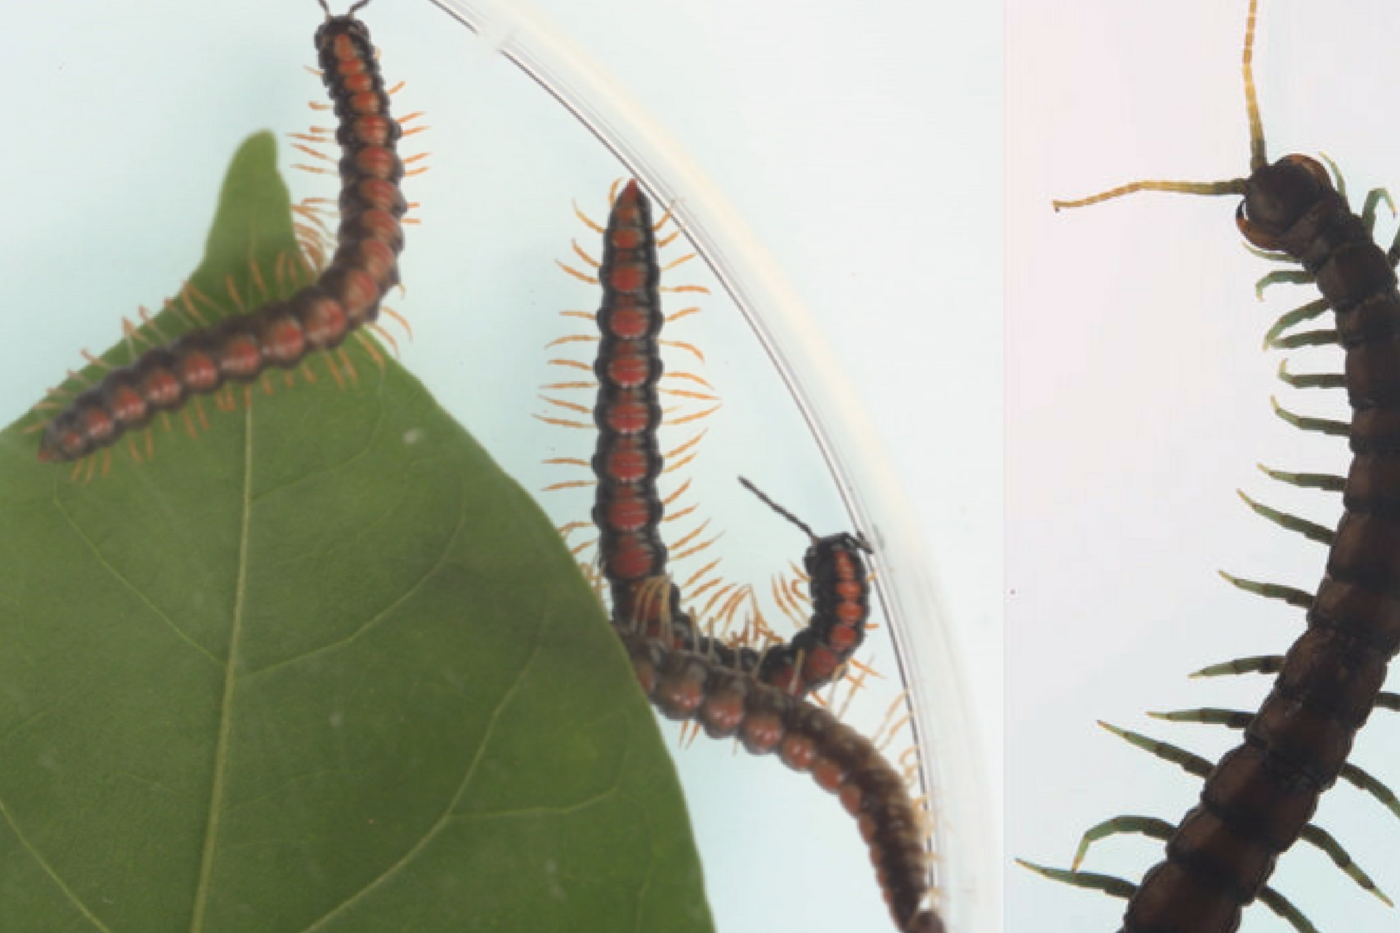 Two photos: one of long reddish black insects with many orange legs. The other of a bigger black insect with pointed green legs.